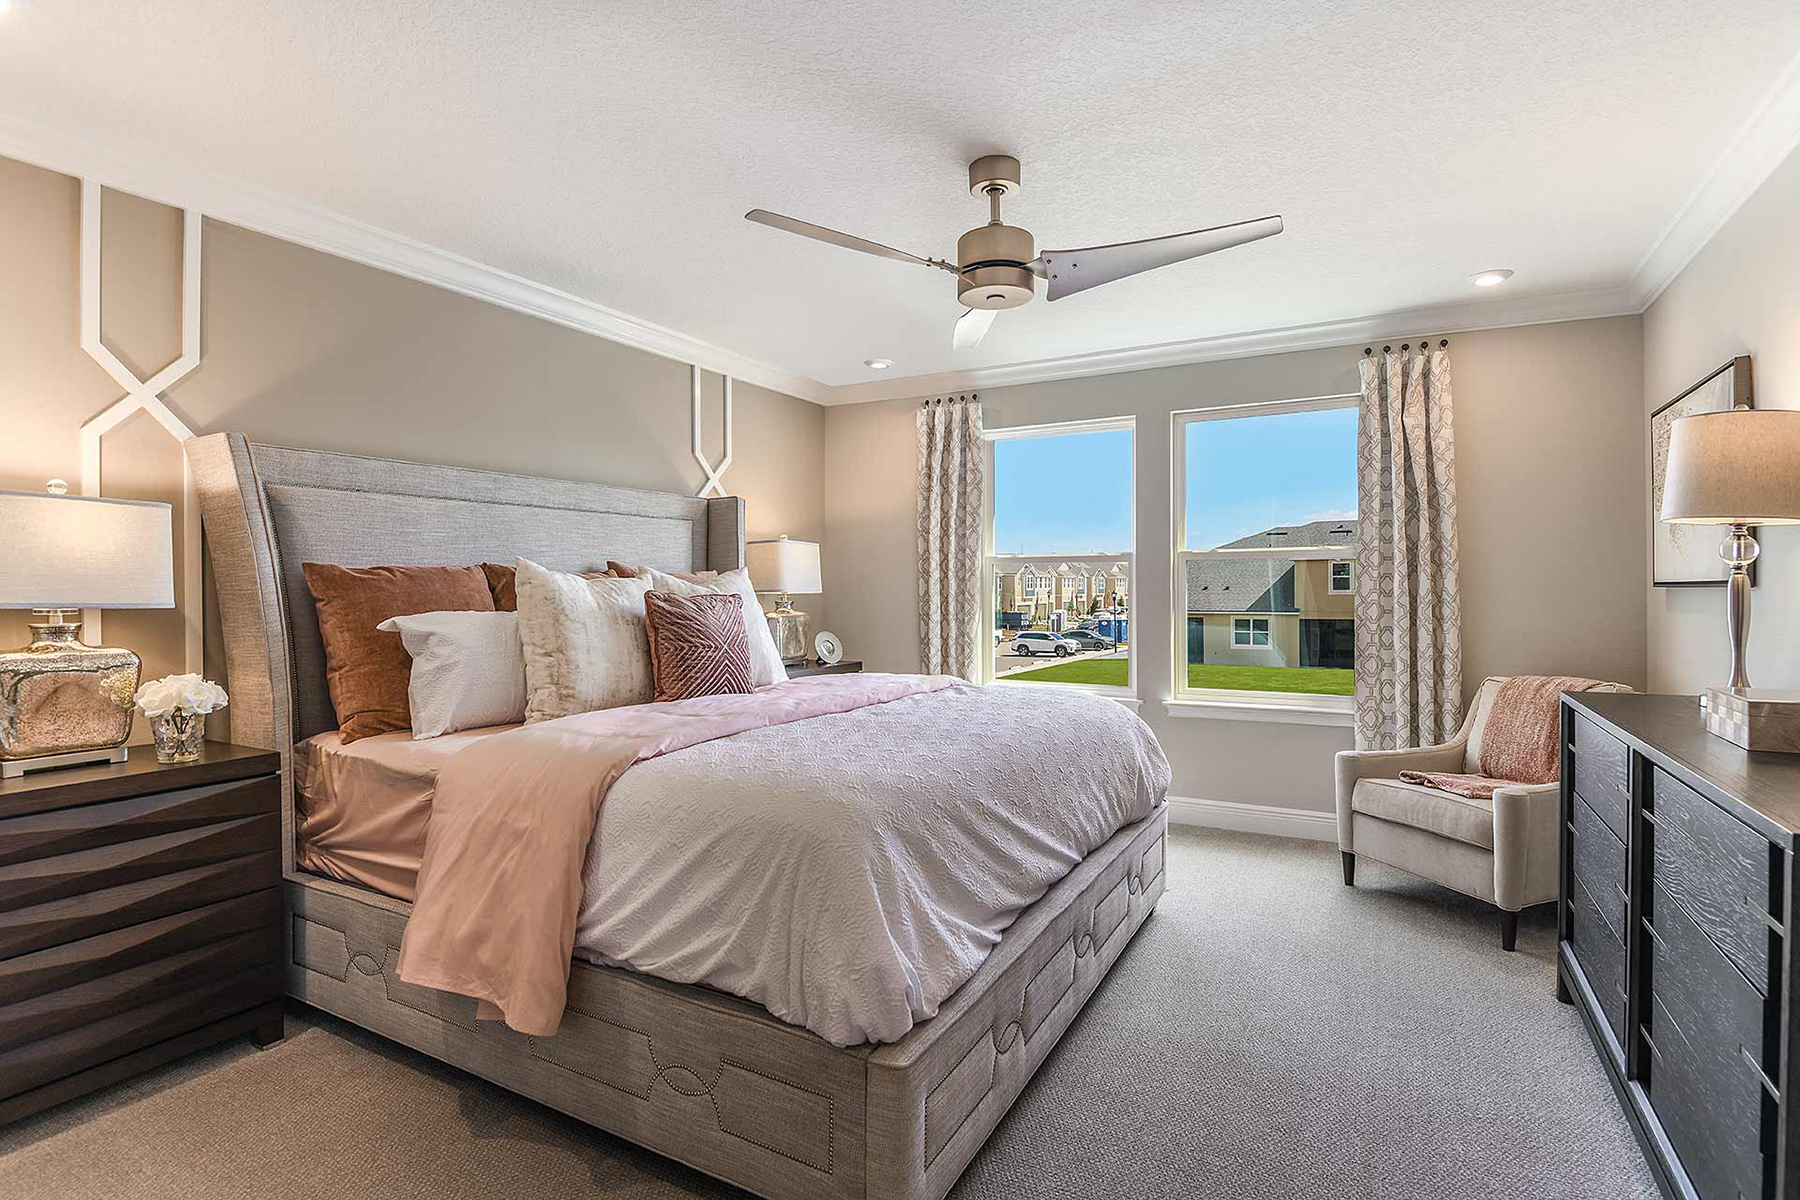 Sebring Plan Bedroom at Avea Pointe in Lutz Florida by Mattamy Homes